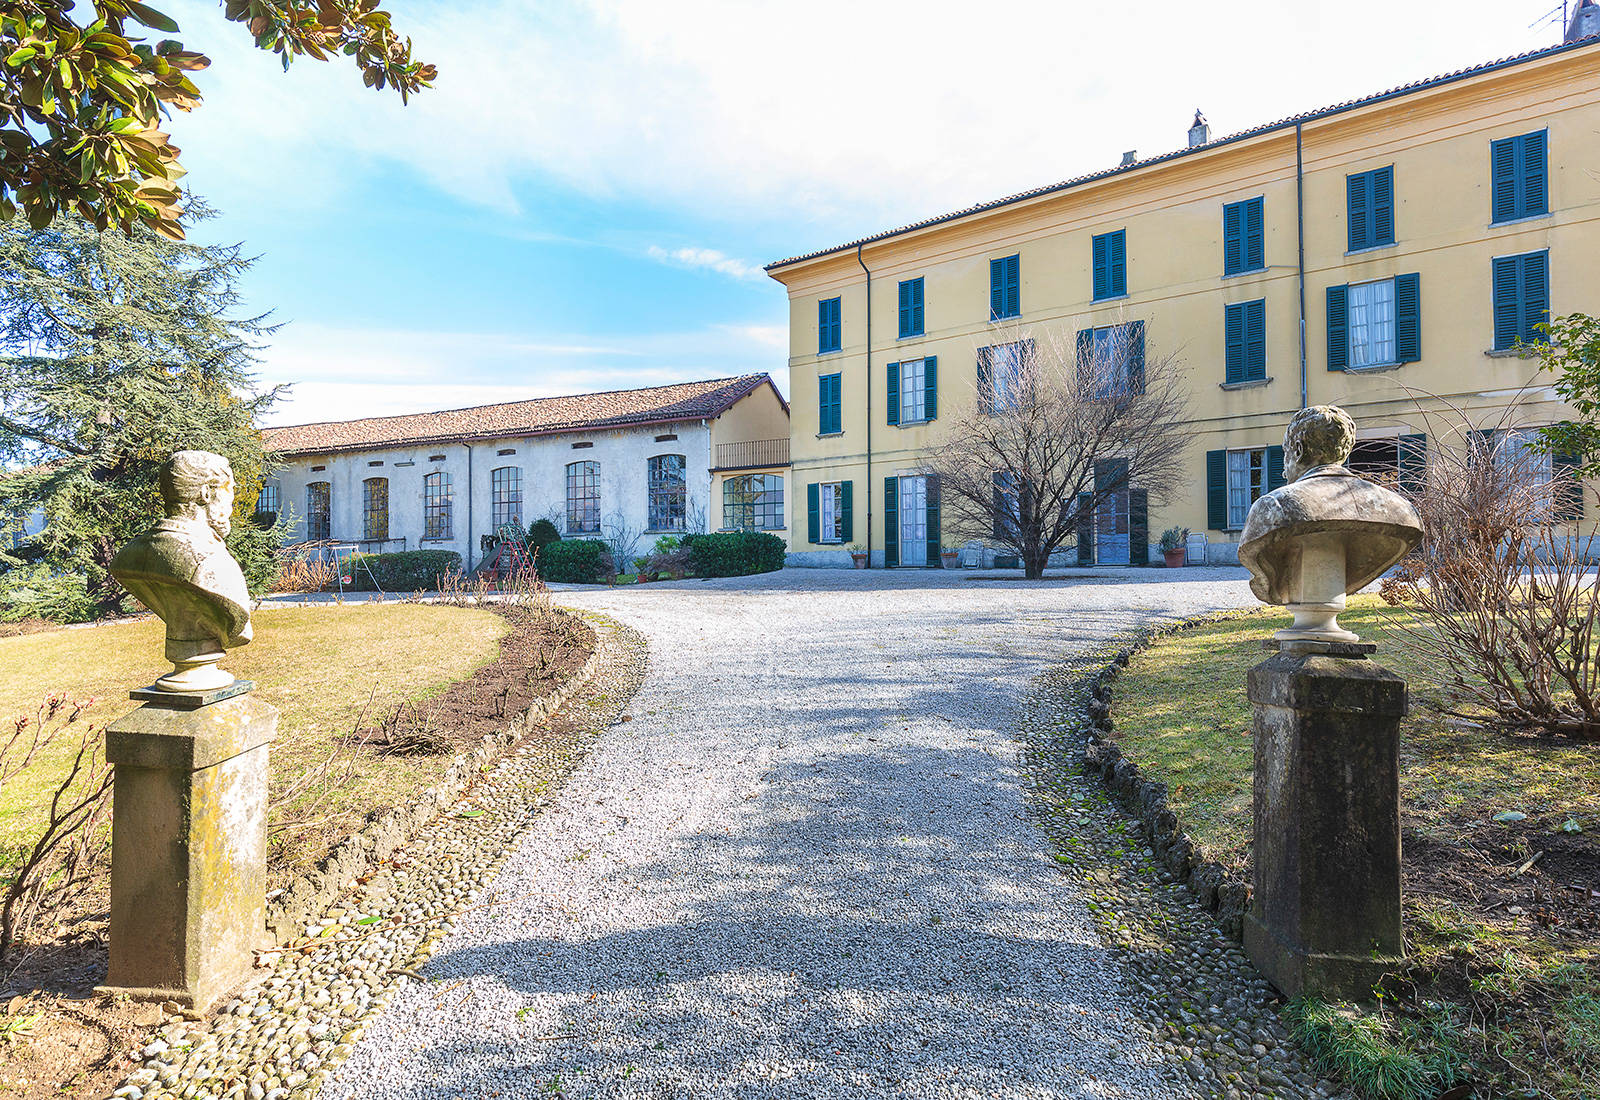 prestigious_real_estate_in_italy?id=2319